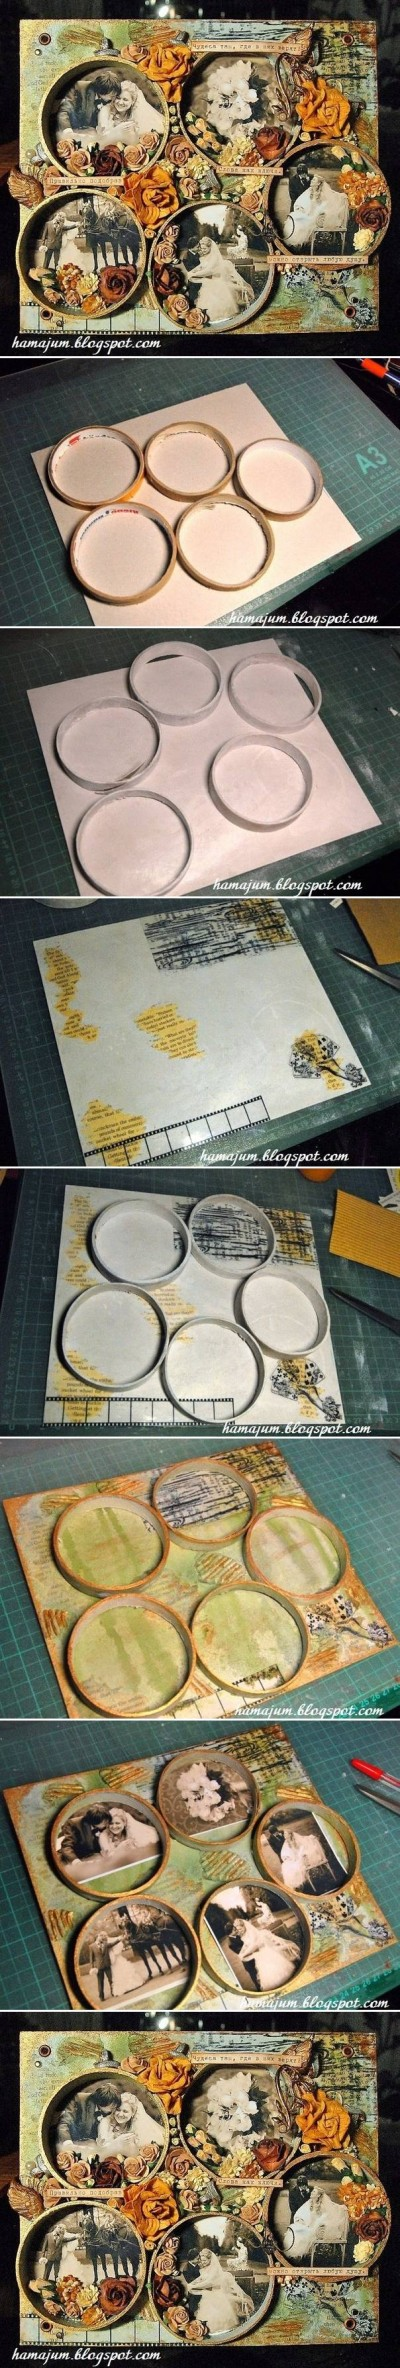 How to make Tape Reel Picture Frame step by step DIY instructions